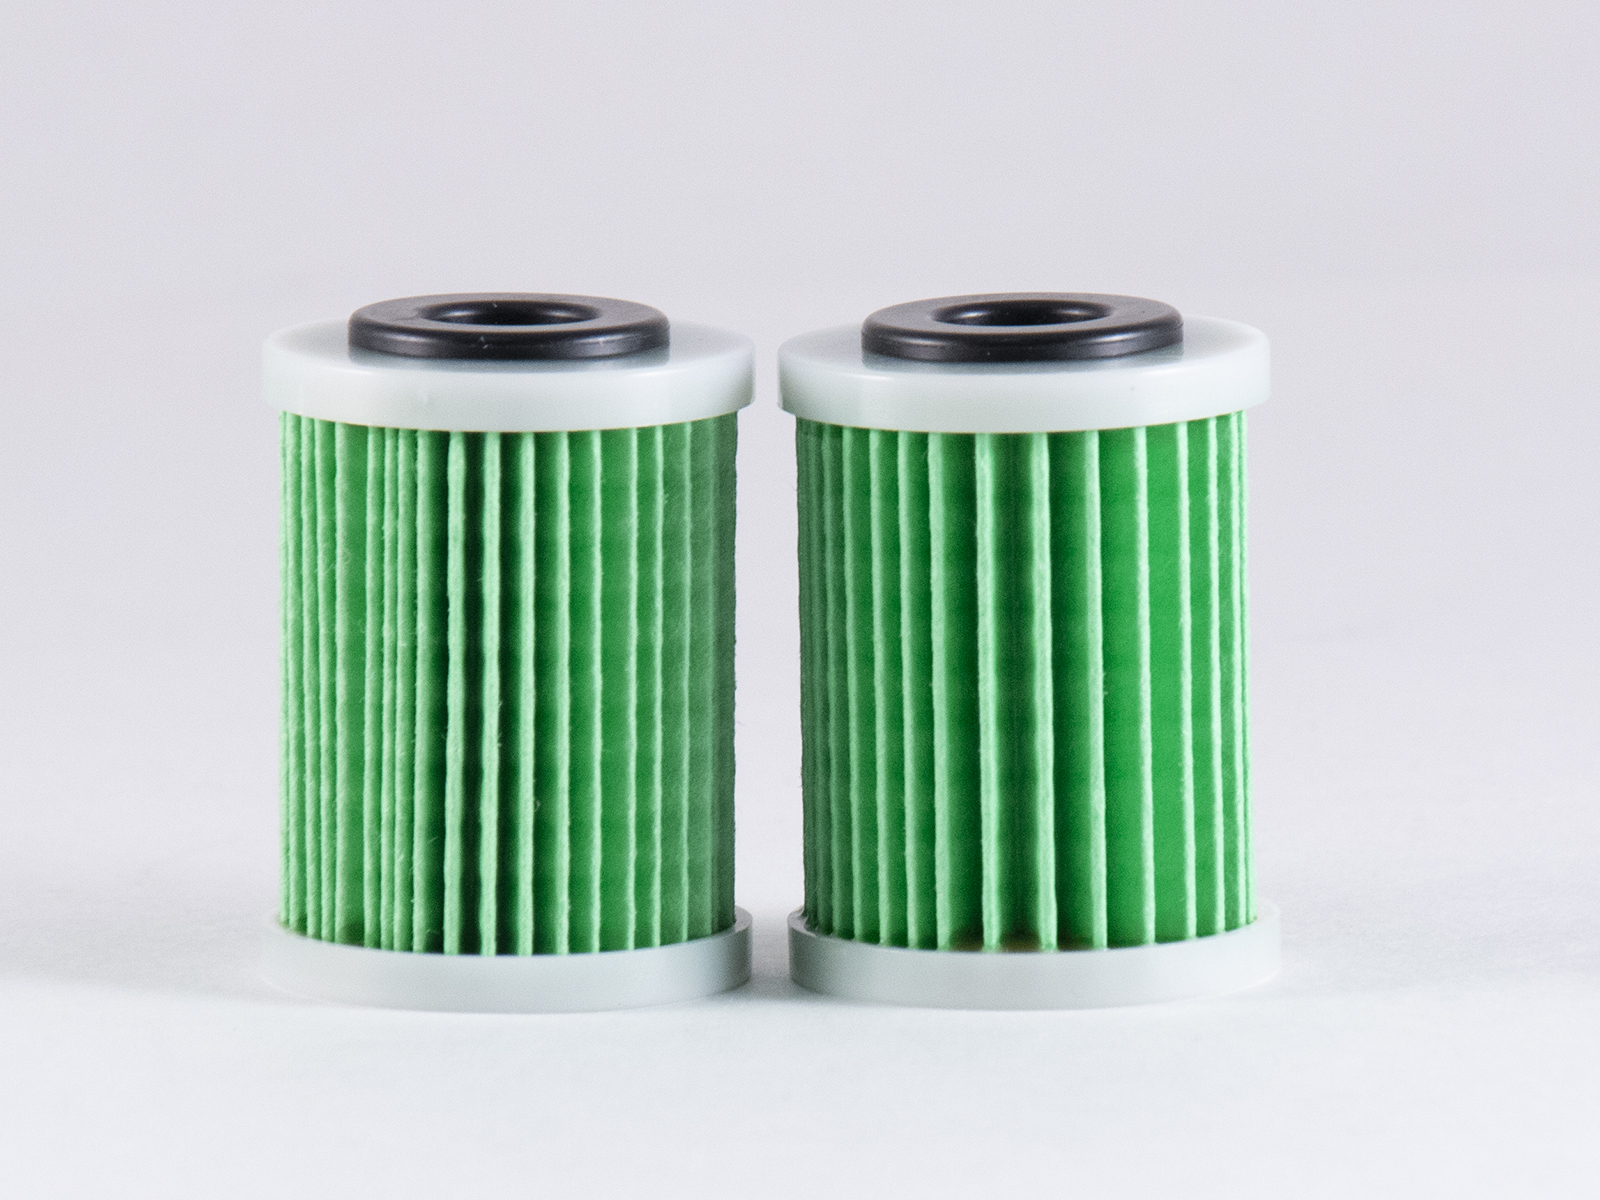 hight resolution of sierra 79809 yamaha fuel filter element 2 pack replaces 6p3 ws24a 01 00 partsvu